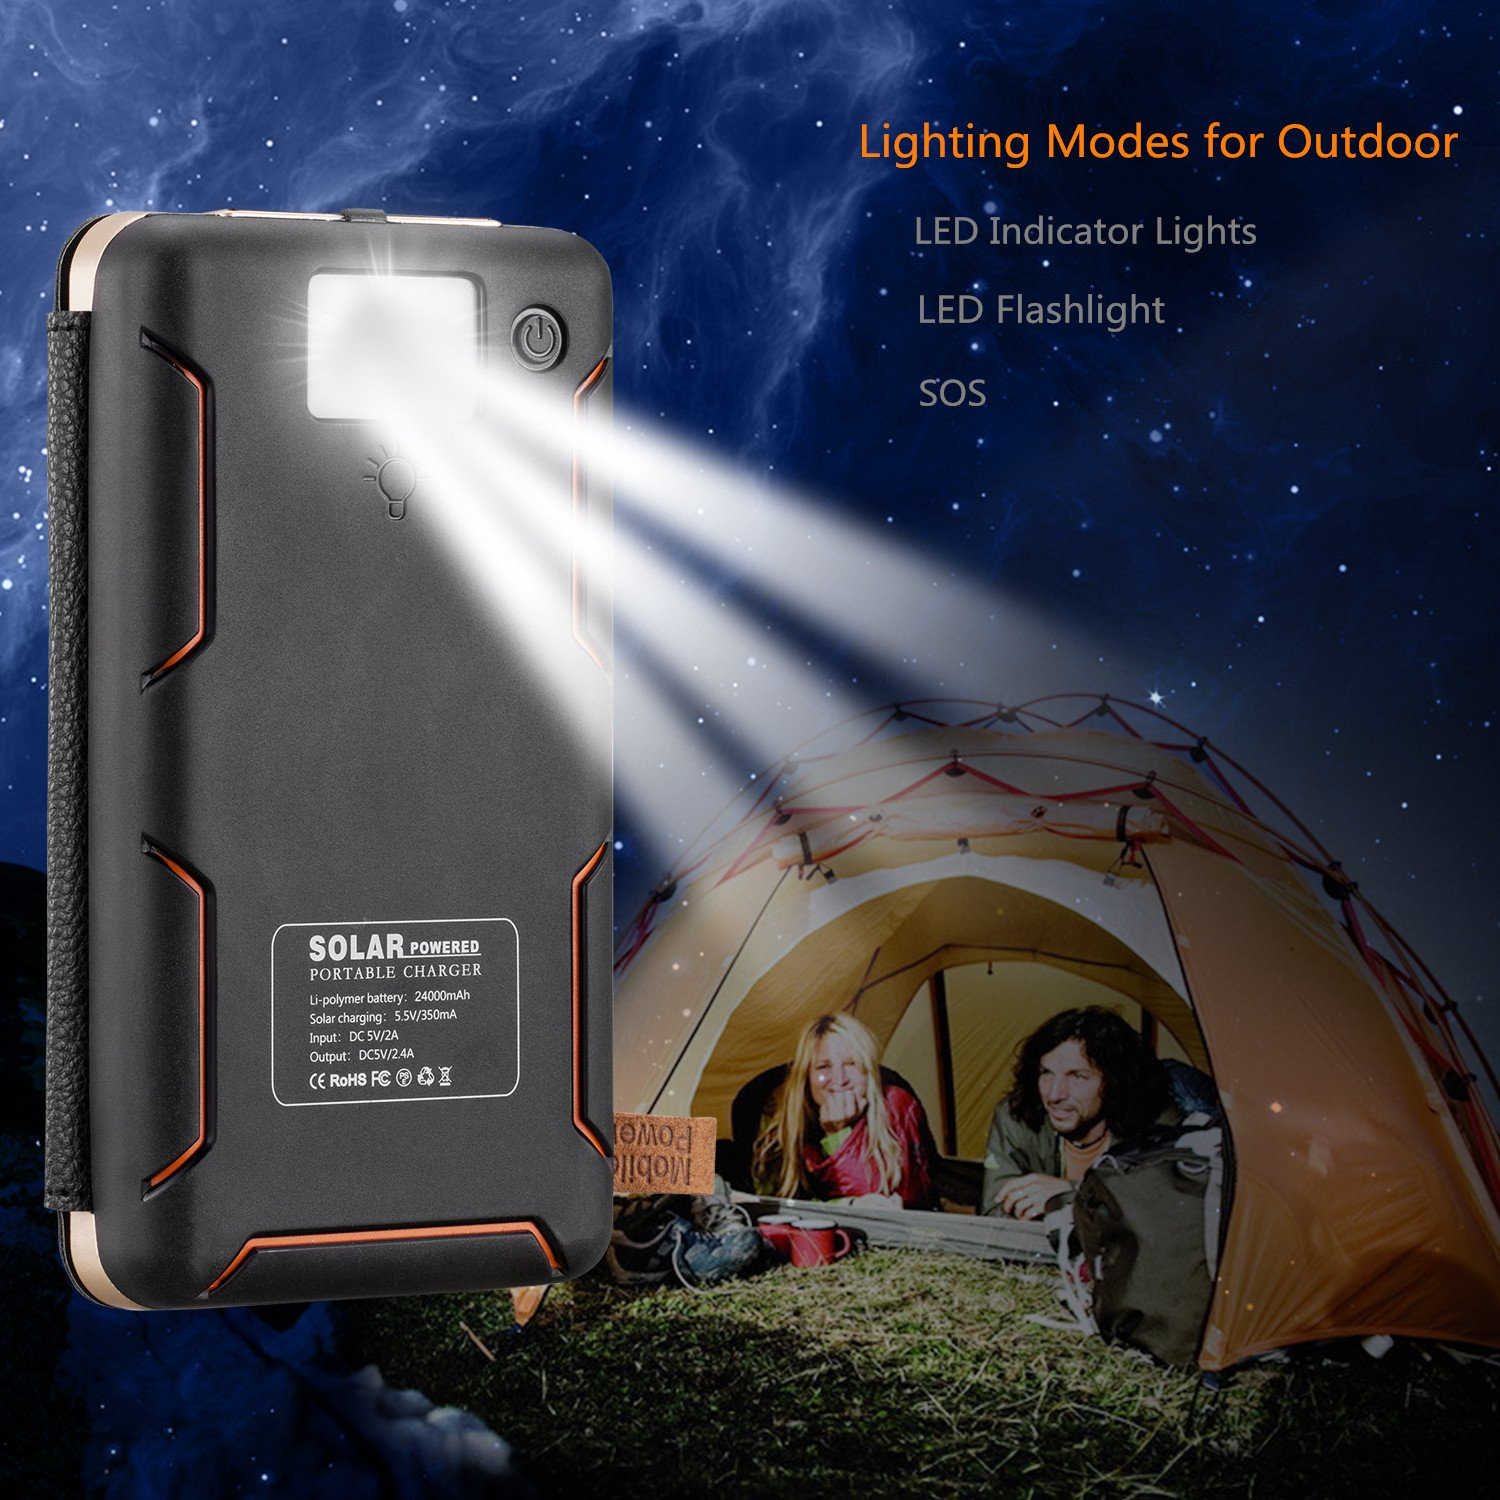 Aimshine PowerCore 24000mAh Solar Charger with Dual USB Ports, Upgraded Pairs of Solar Panels Power Bank for iPhone,SAMSUNG,ipad and Any Rechargeable Devices, A Necessity in Earthquake or Hurricane by Aimshine (Image #7)